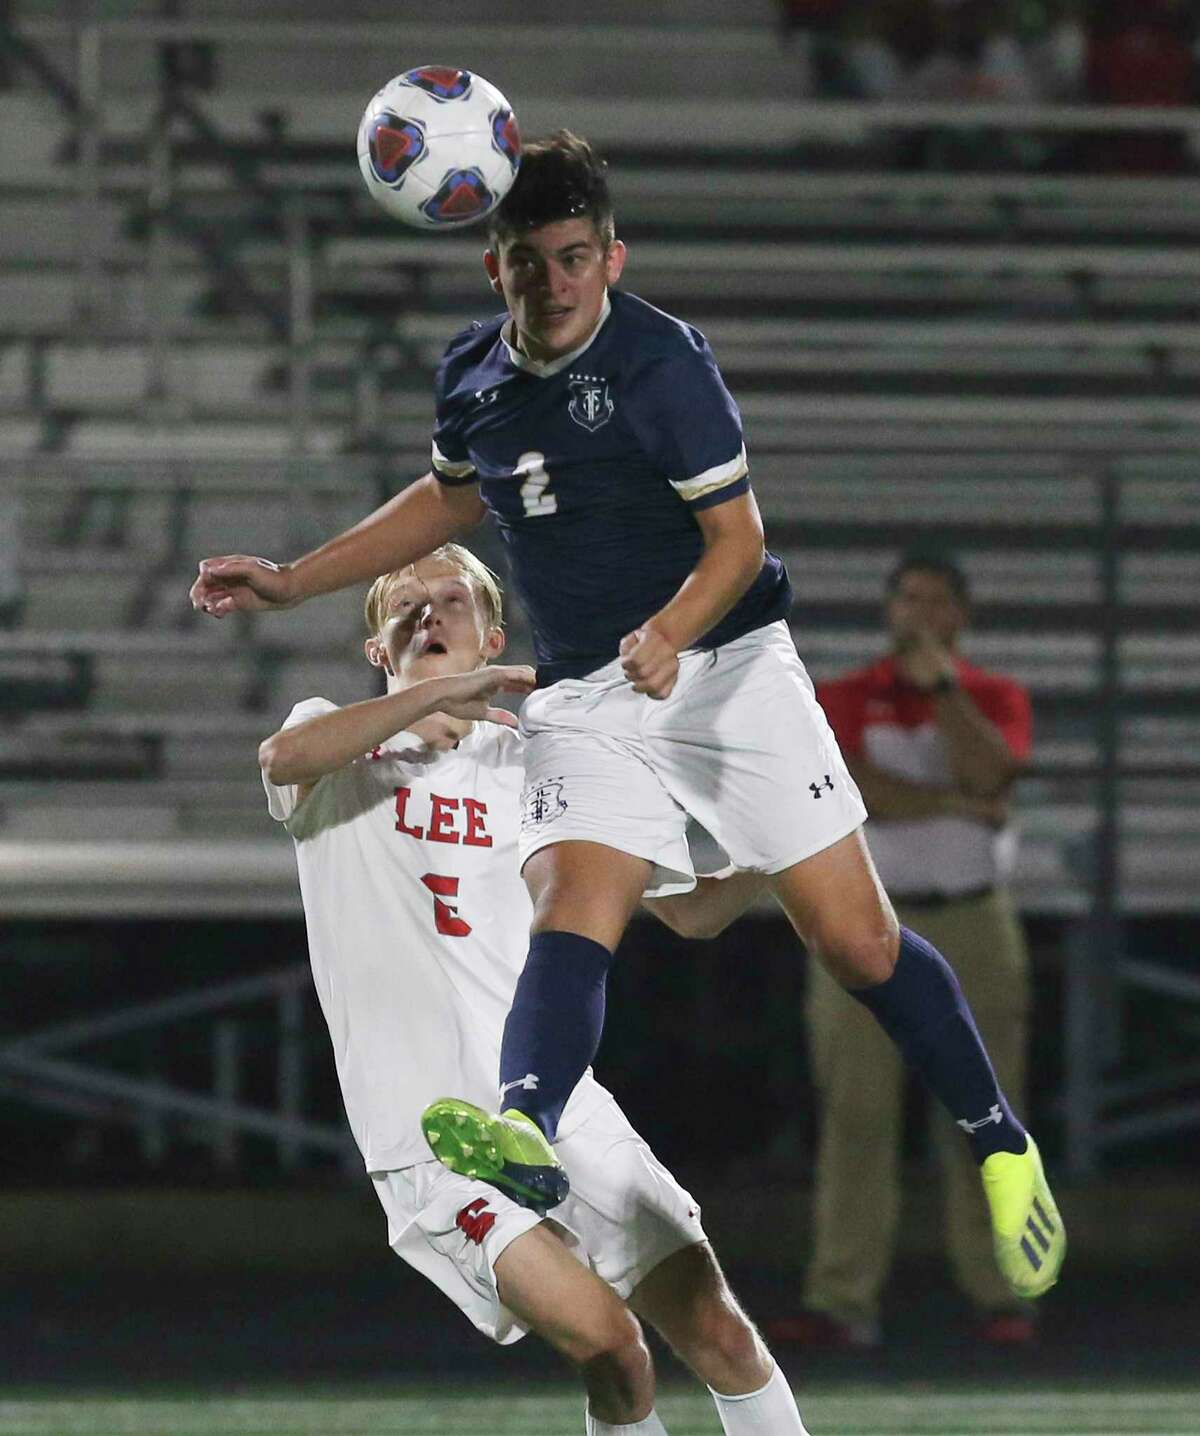 Central Catholic's Erik Alvarado (02) gets up to head the ball against LEE's Andrew Erickson (06) in boys soccer at Central Catholic on Tuesday, Jan. 14, 2020. LEE defeated Central Catholic, 1-0, to take the win between the two top rated high school teams.